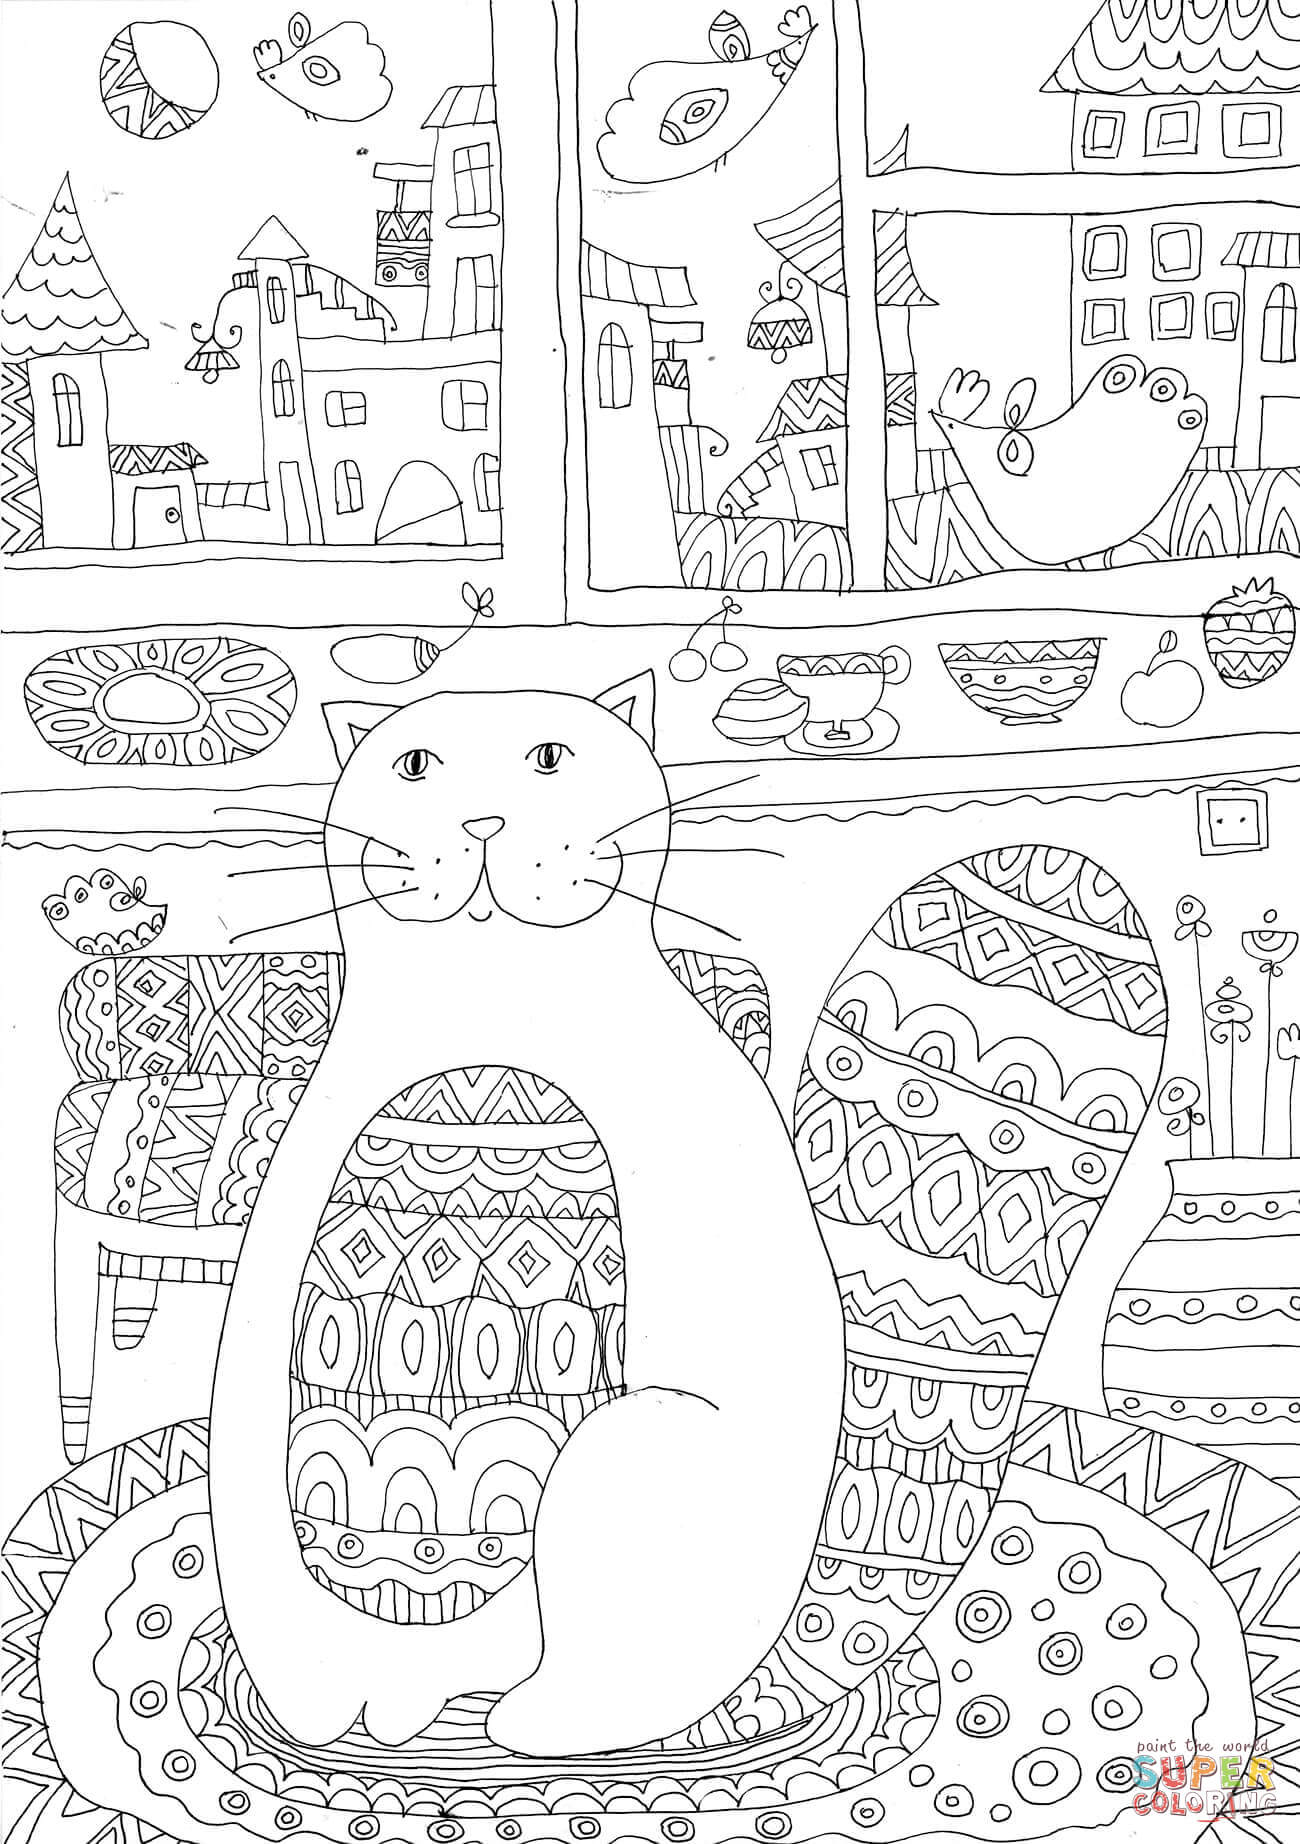 Cozy Kitty Cat Coloring Page